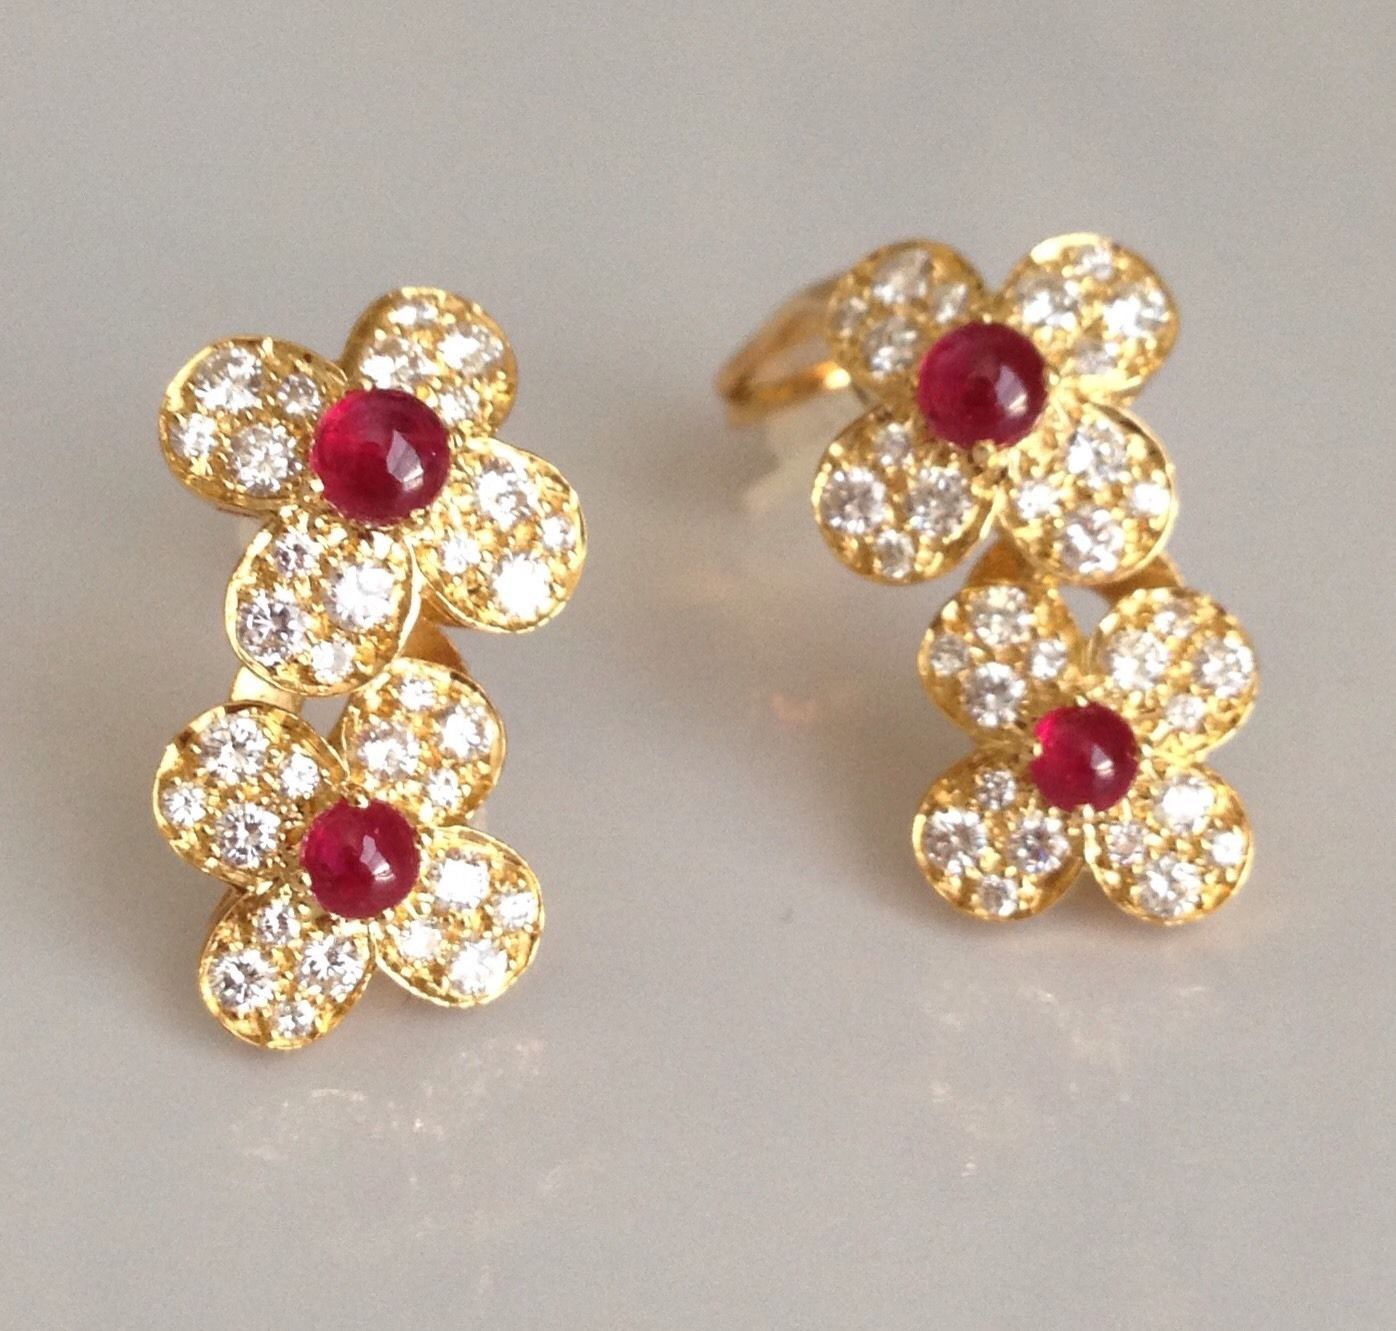 Sold Van Cleef & Arpels 18k Yellow Gold Diamond Rubies Trefle Two Flower  Earrings